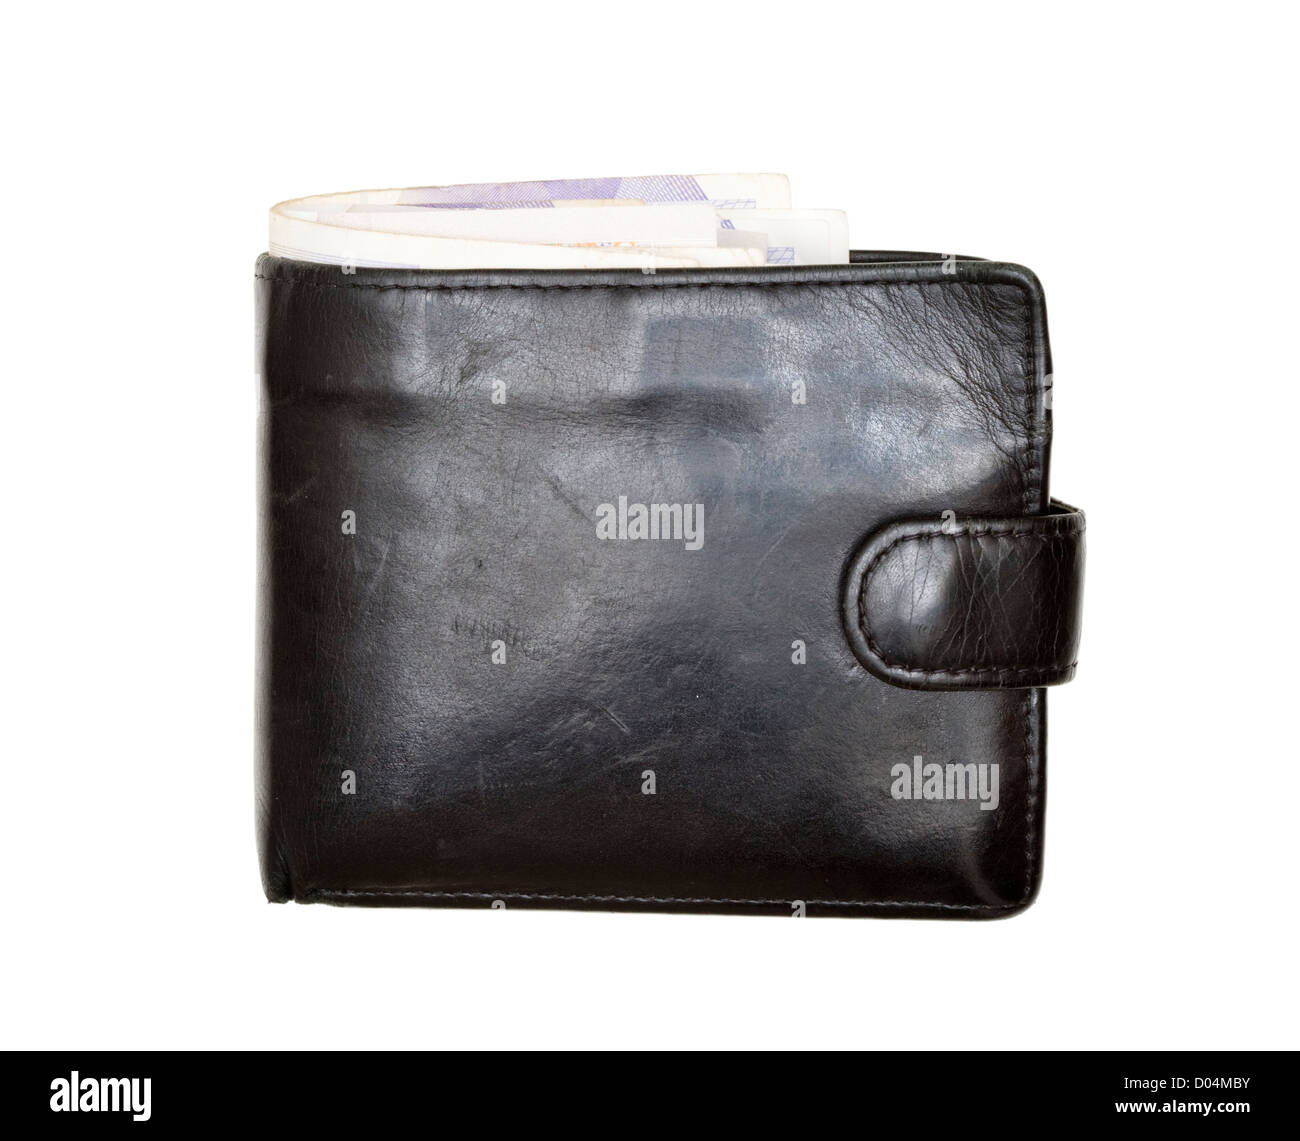 Wallet, full of money (sterling). - Stock Image